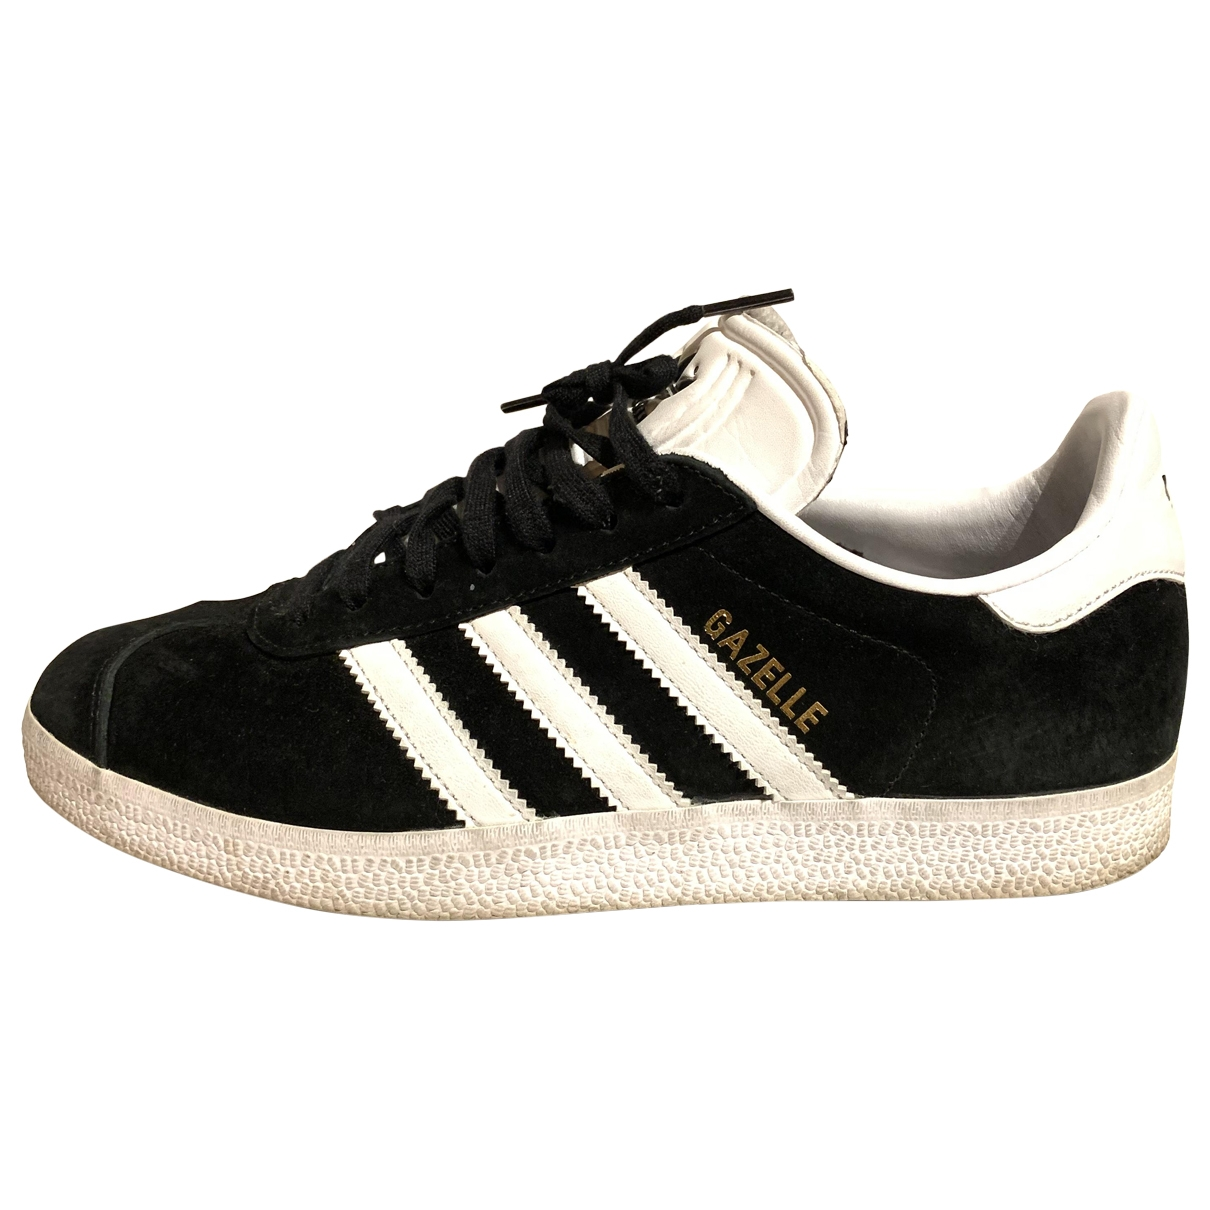 Adidas Gazelle Black Suede Trainers for Women 6 US